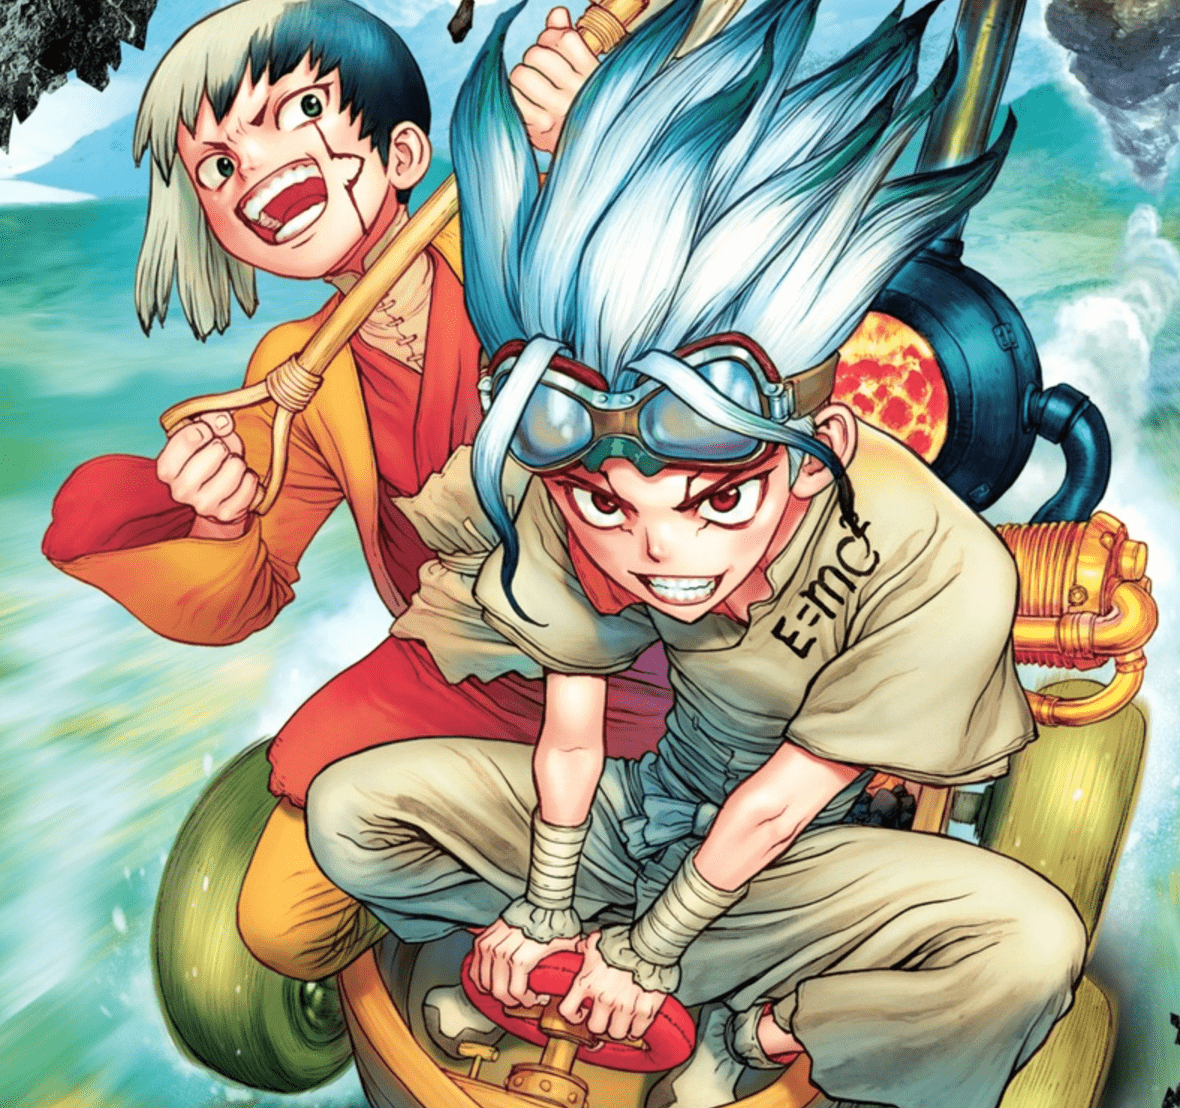 Dr. Stone Vol. 8 Review